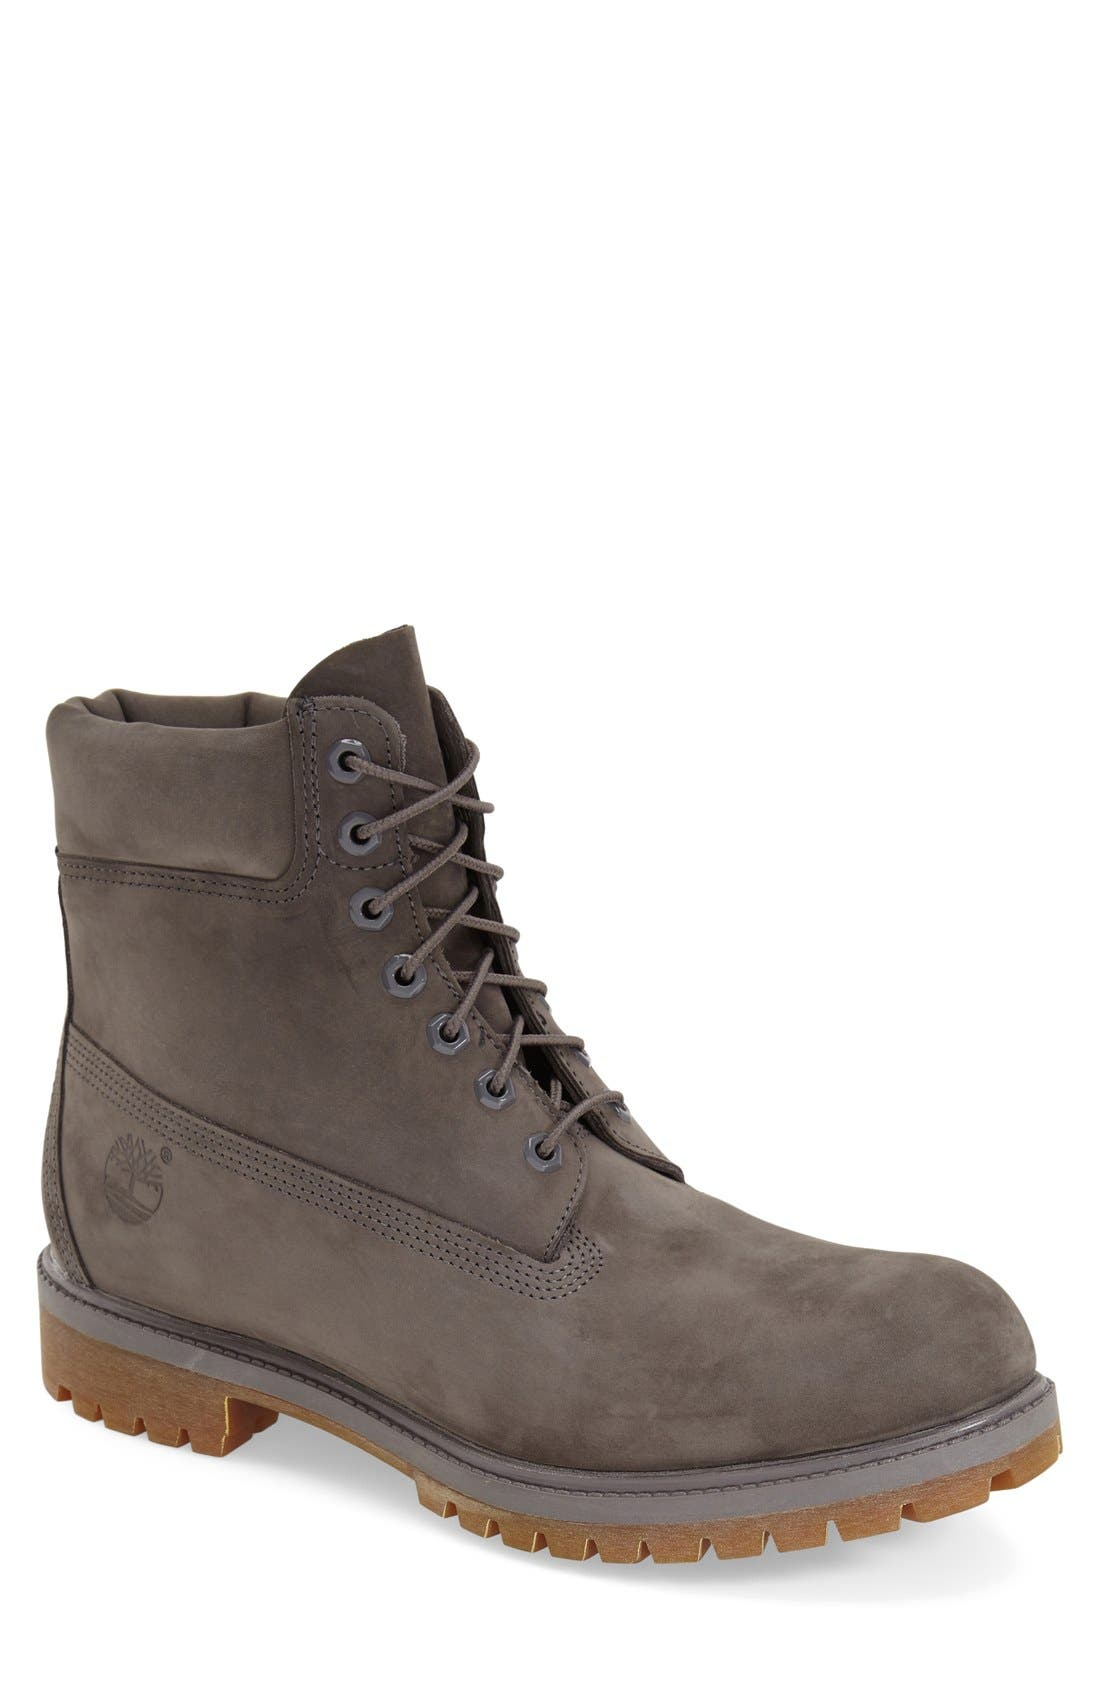 Main Image - Timberland 'Monochromatic' Waterproof Plain Toe Boot (Men)